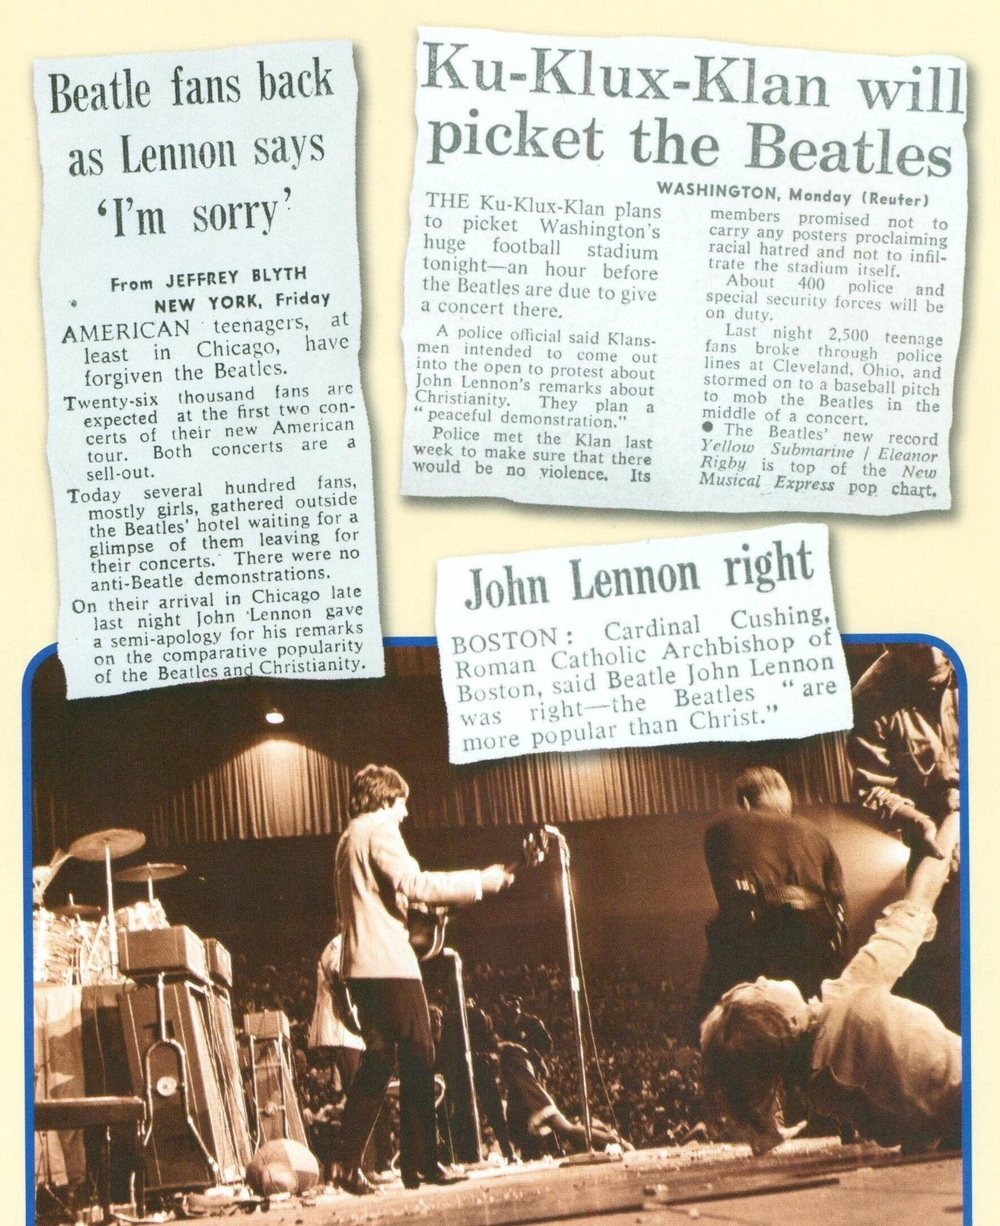 Newspaper headlines after John Lennon's remarks about Christianity.